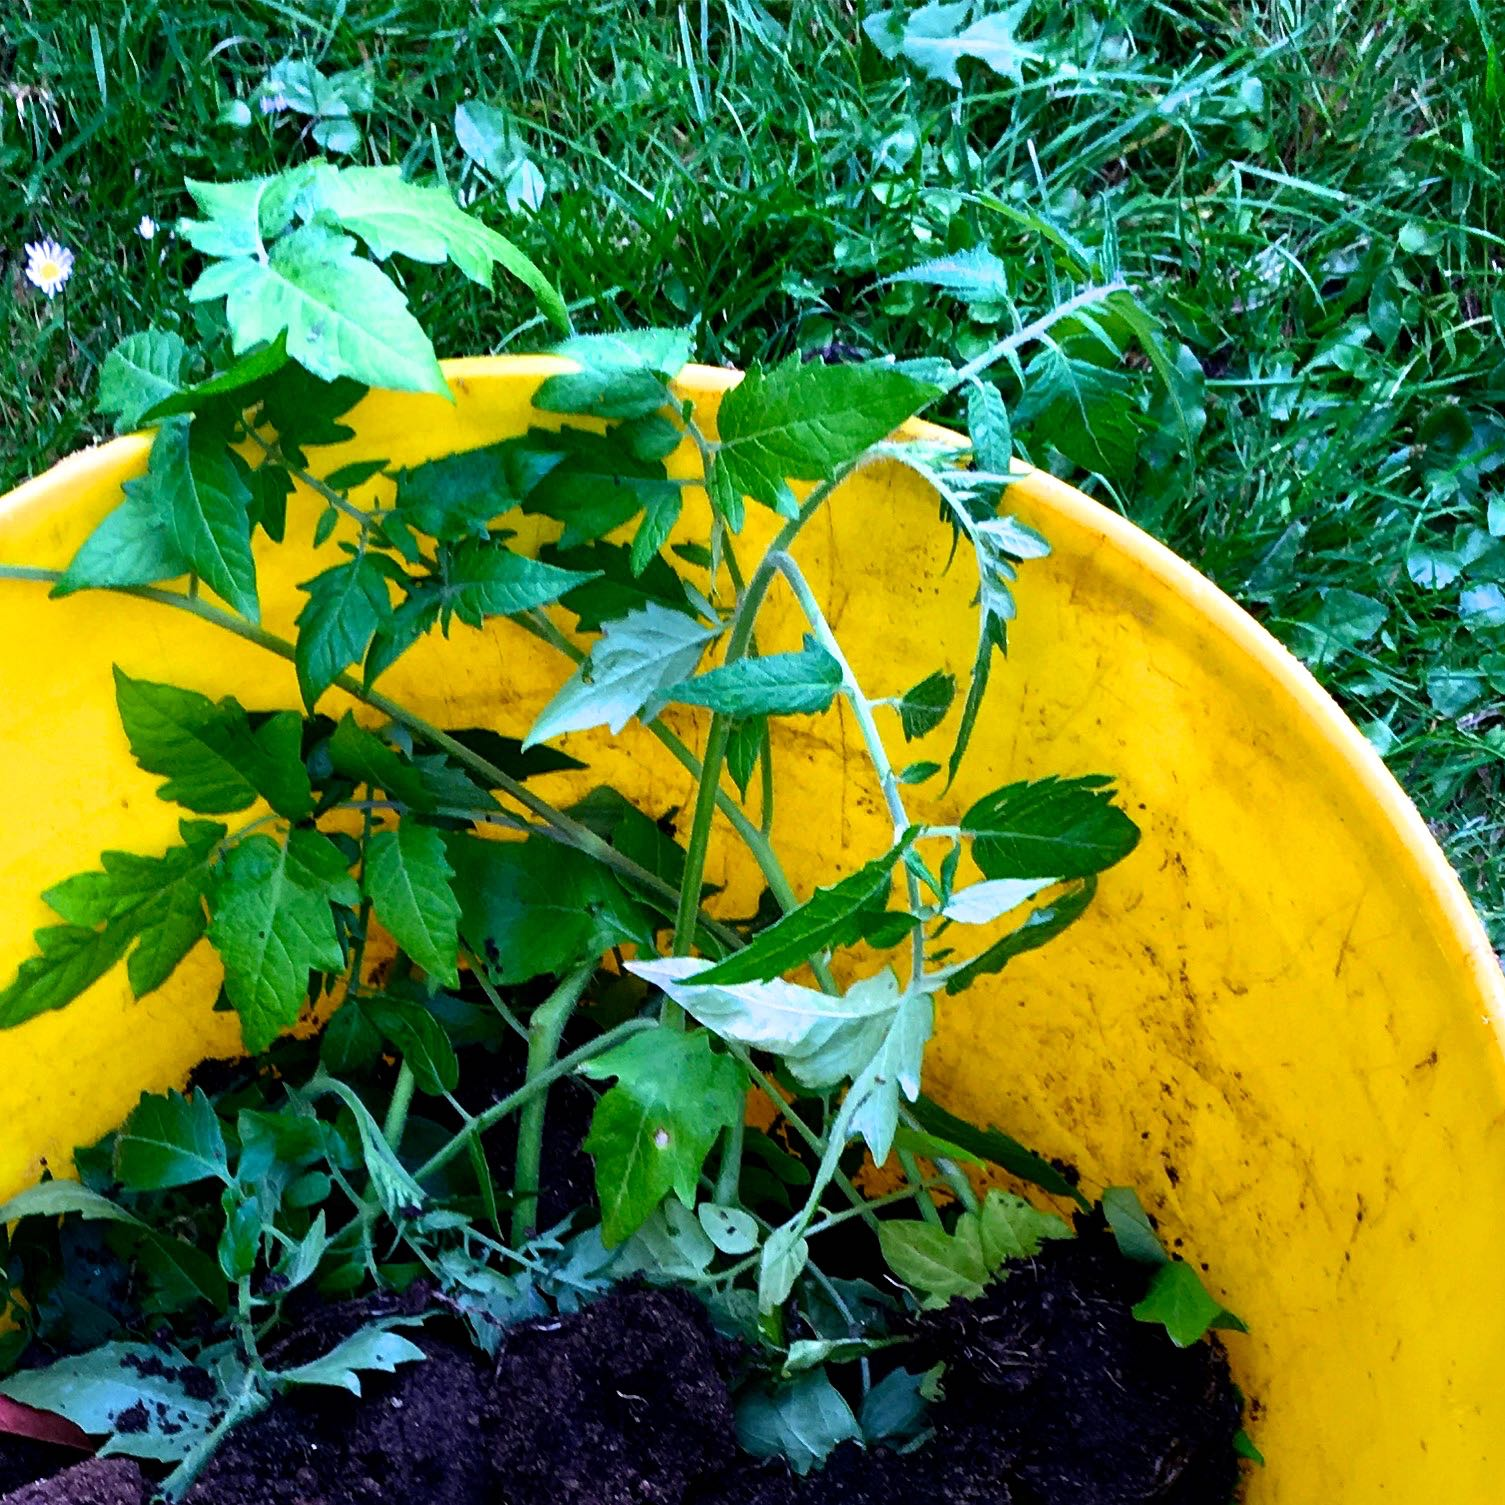 DESTINED FOR THE COMPOST HEAP. SOB.